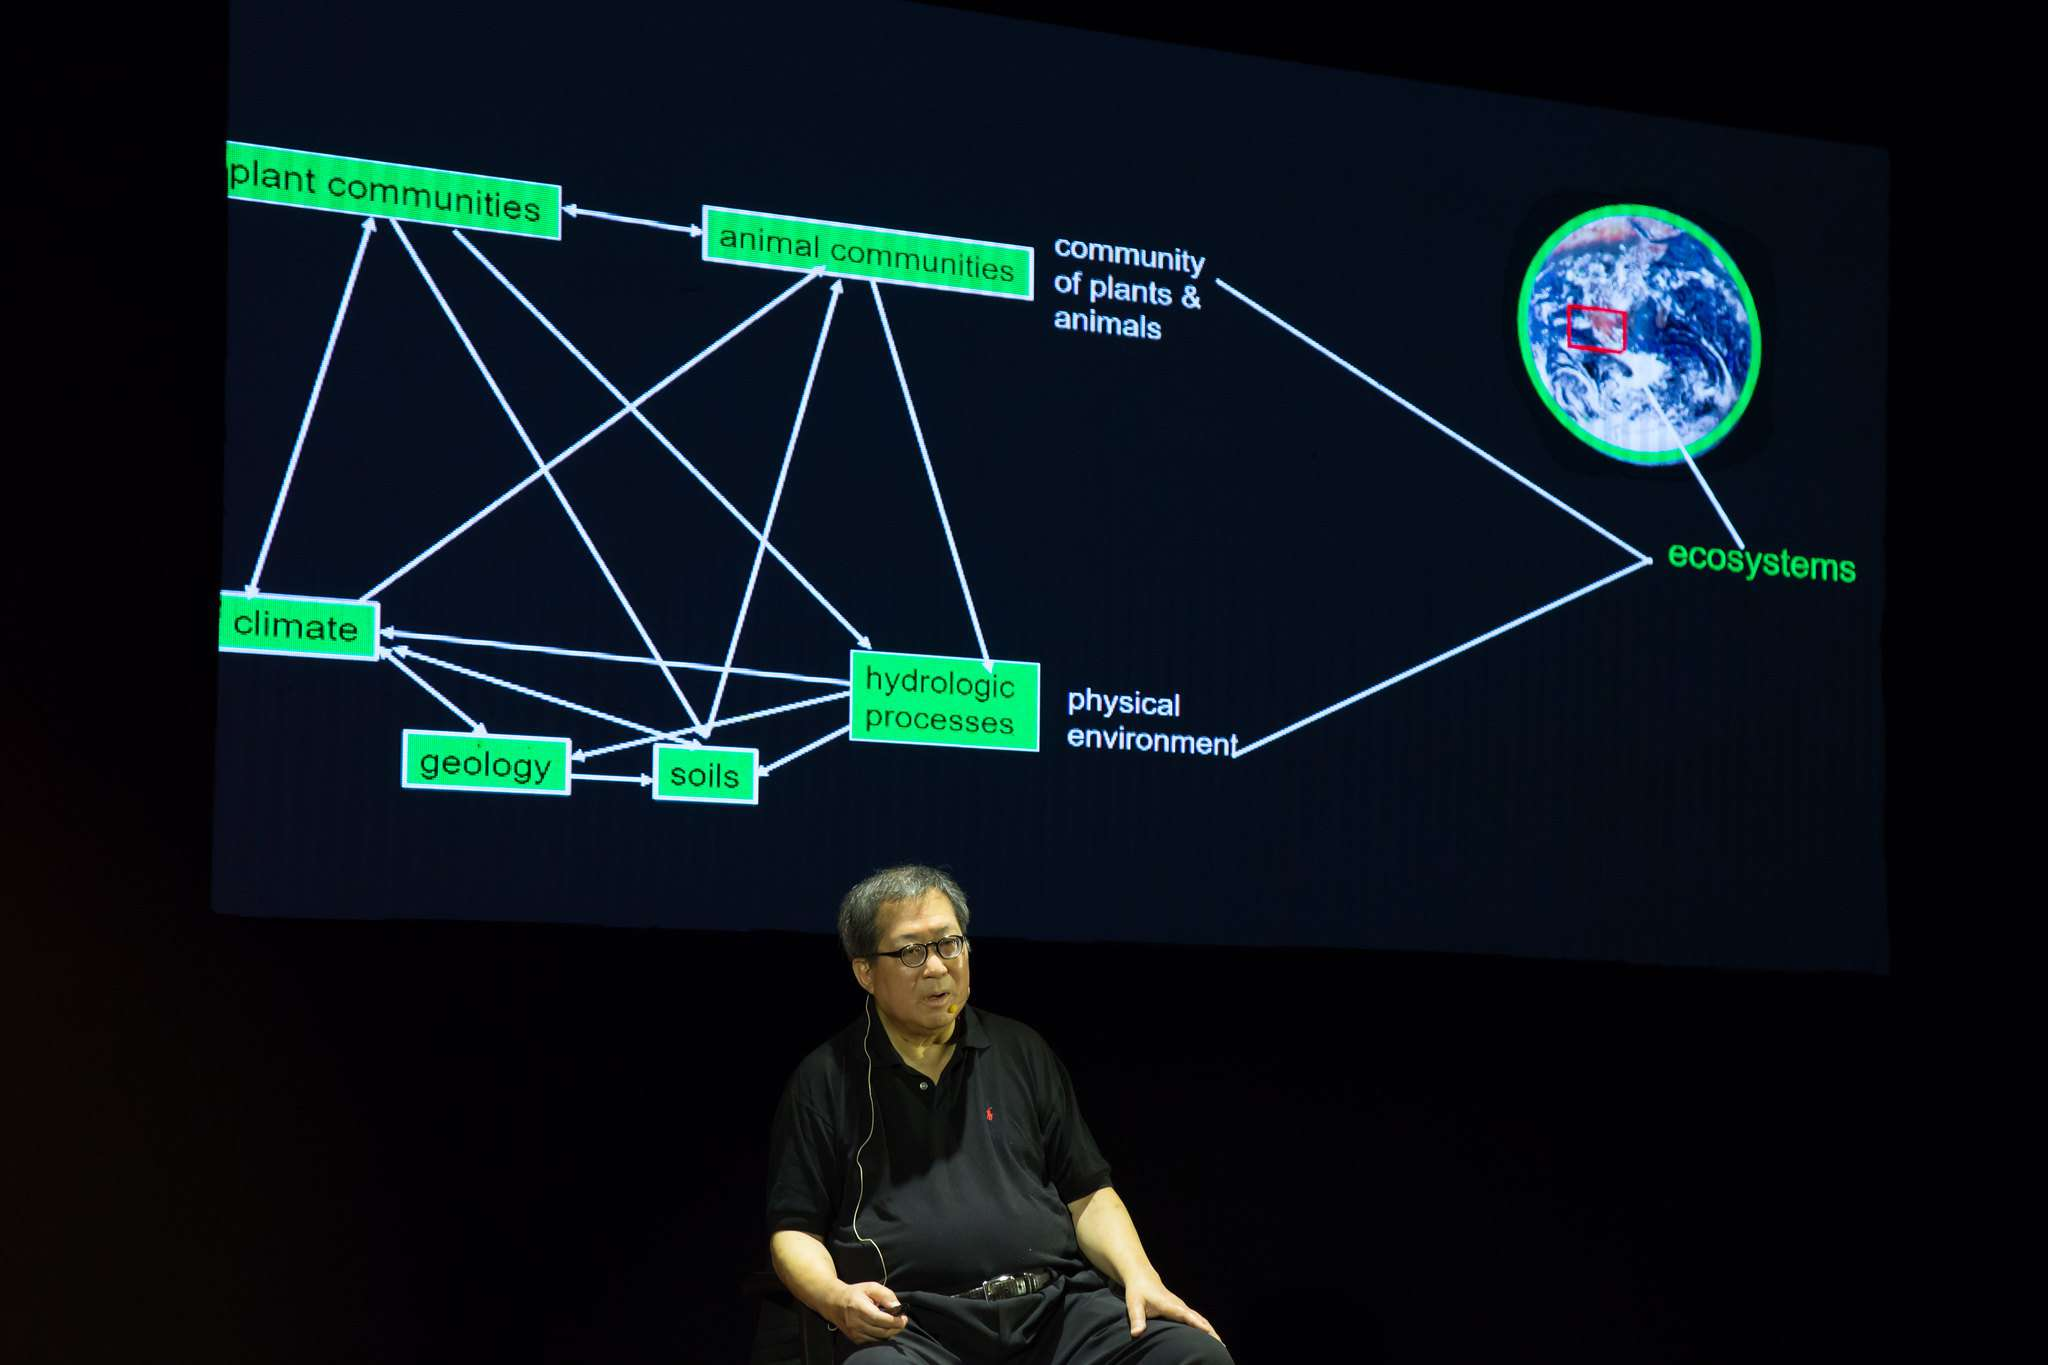 Architect Ken Yeang on stage talking about his work in front of a screen,